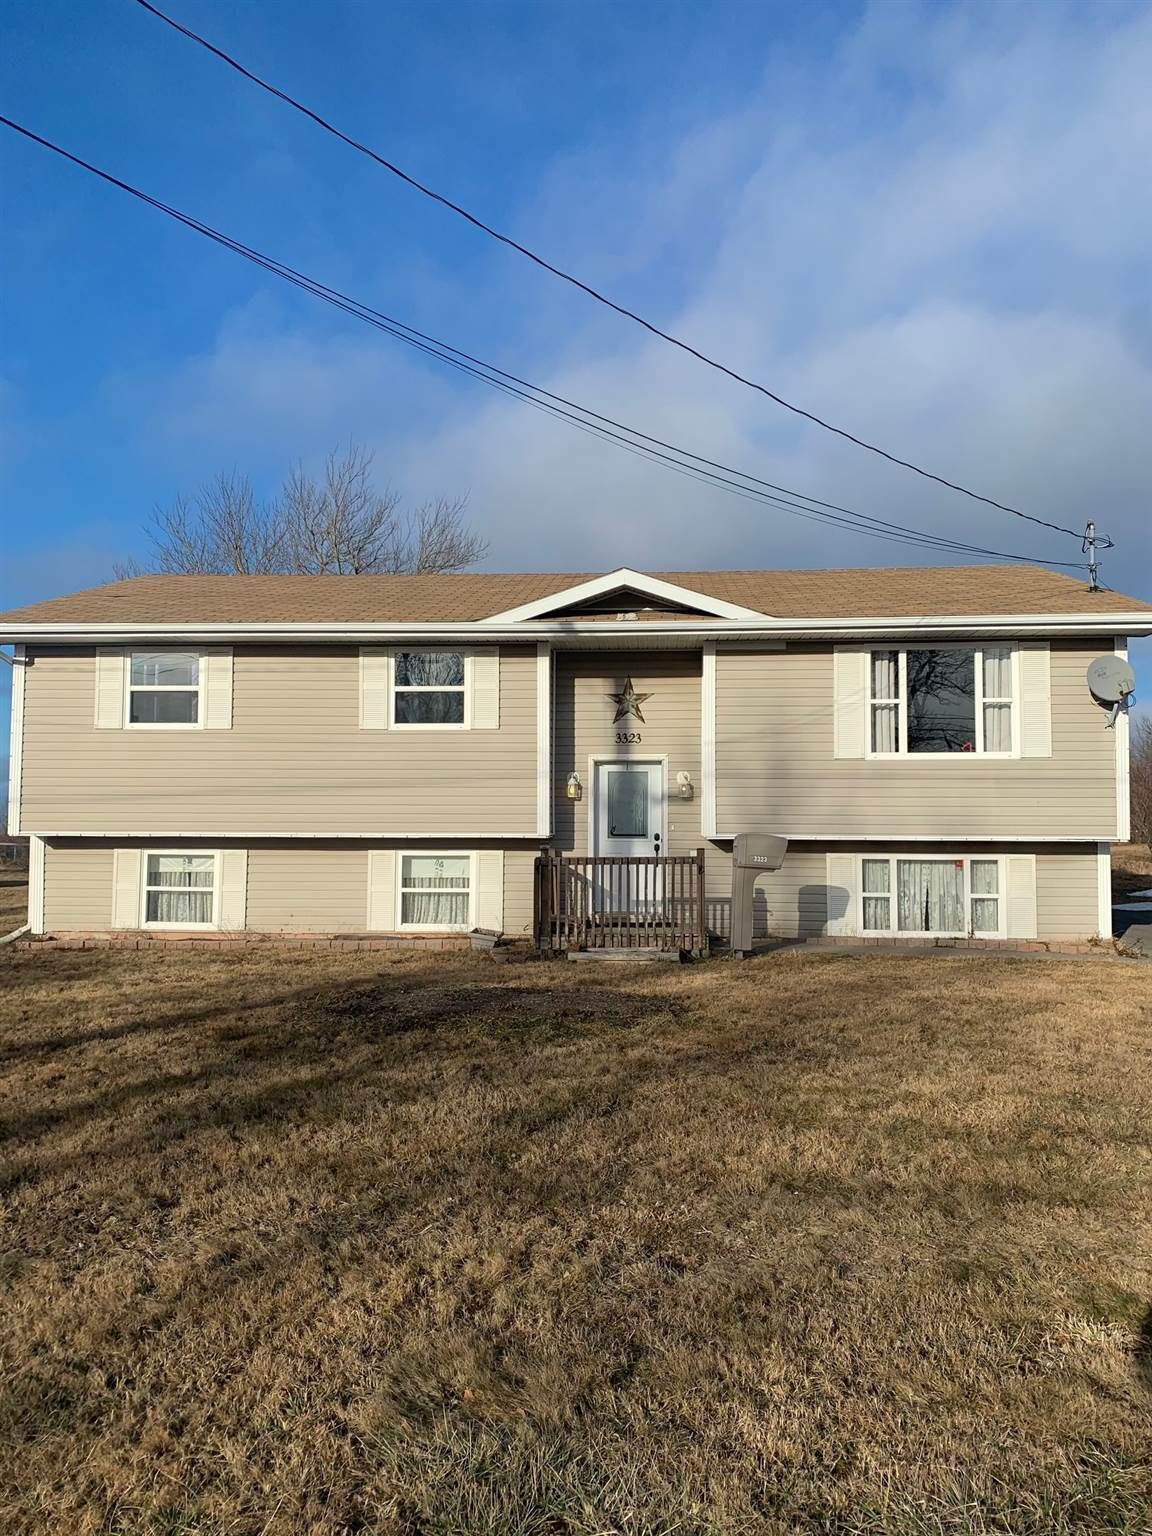 Main Photo: 3323 Emerald Street in New Waterford: 204-New Waterford Residential for sale (Cape Breton)  : MLS®# 202101686